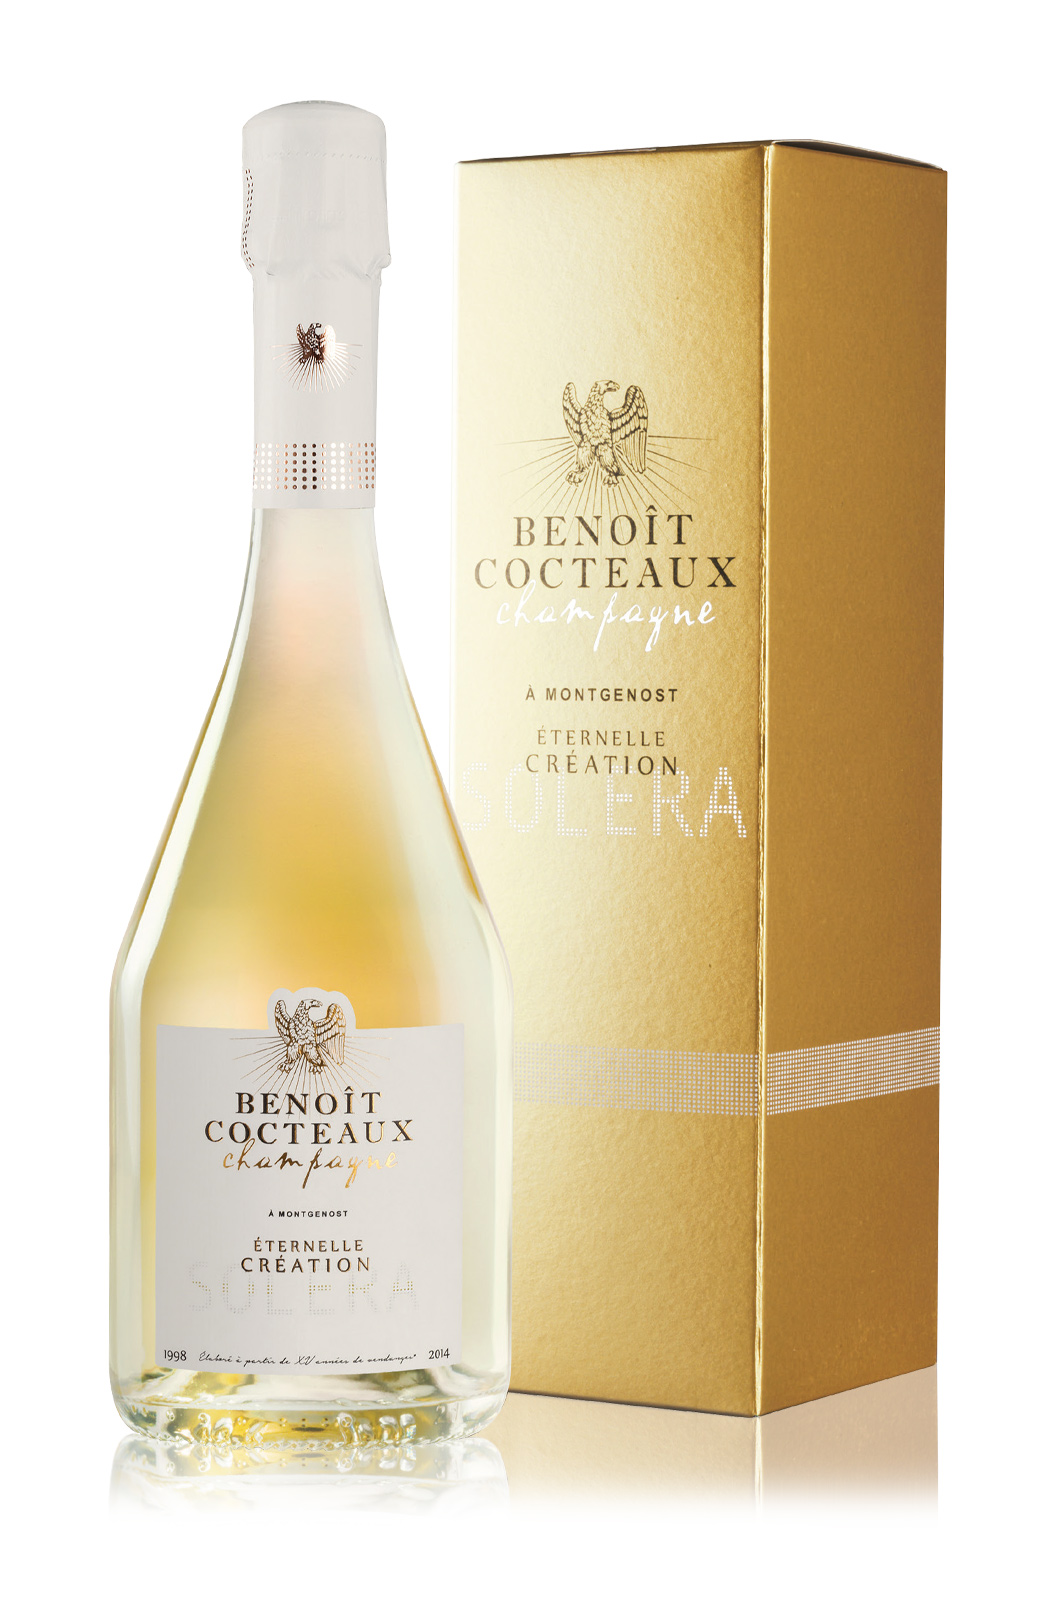 37-benoit-cocteaux-champagne-eternelle-creation-coffret